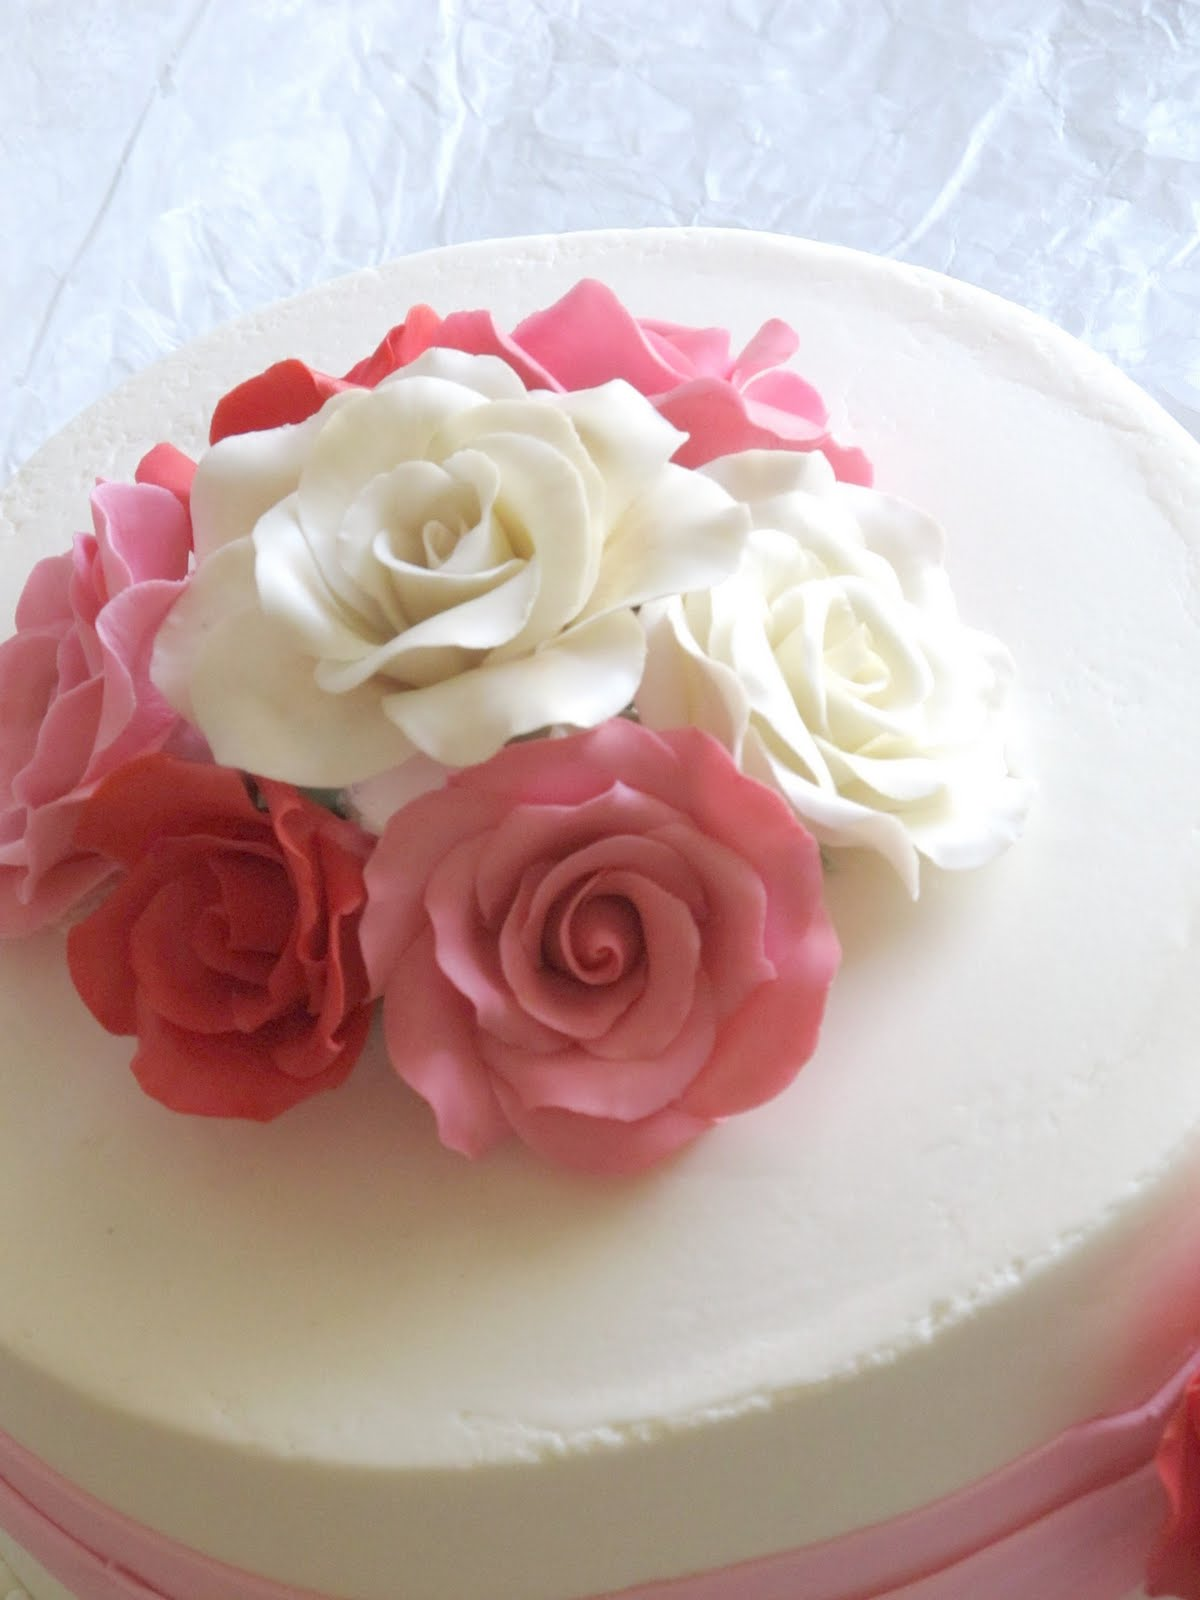 Cake Images With Roses : Happy Cakes Bakes: Simple Rose Cake